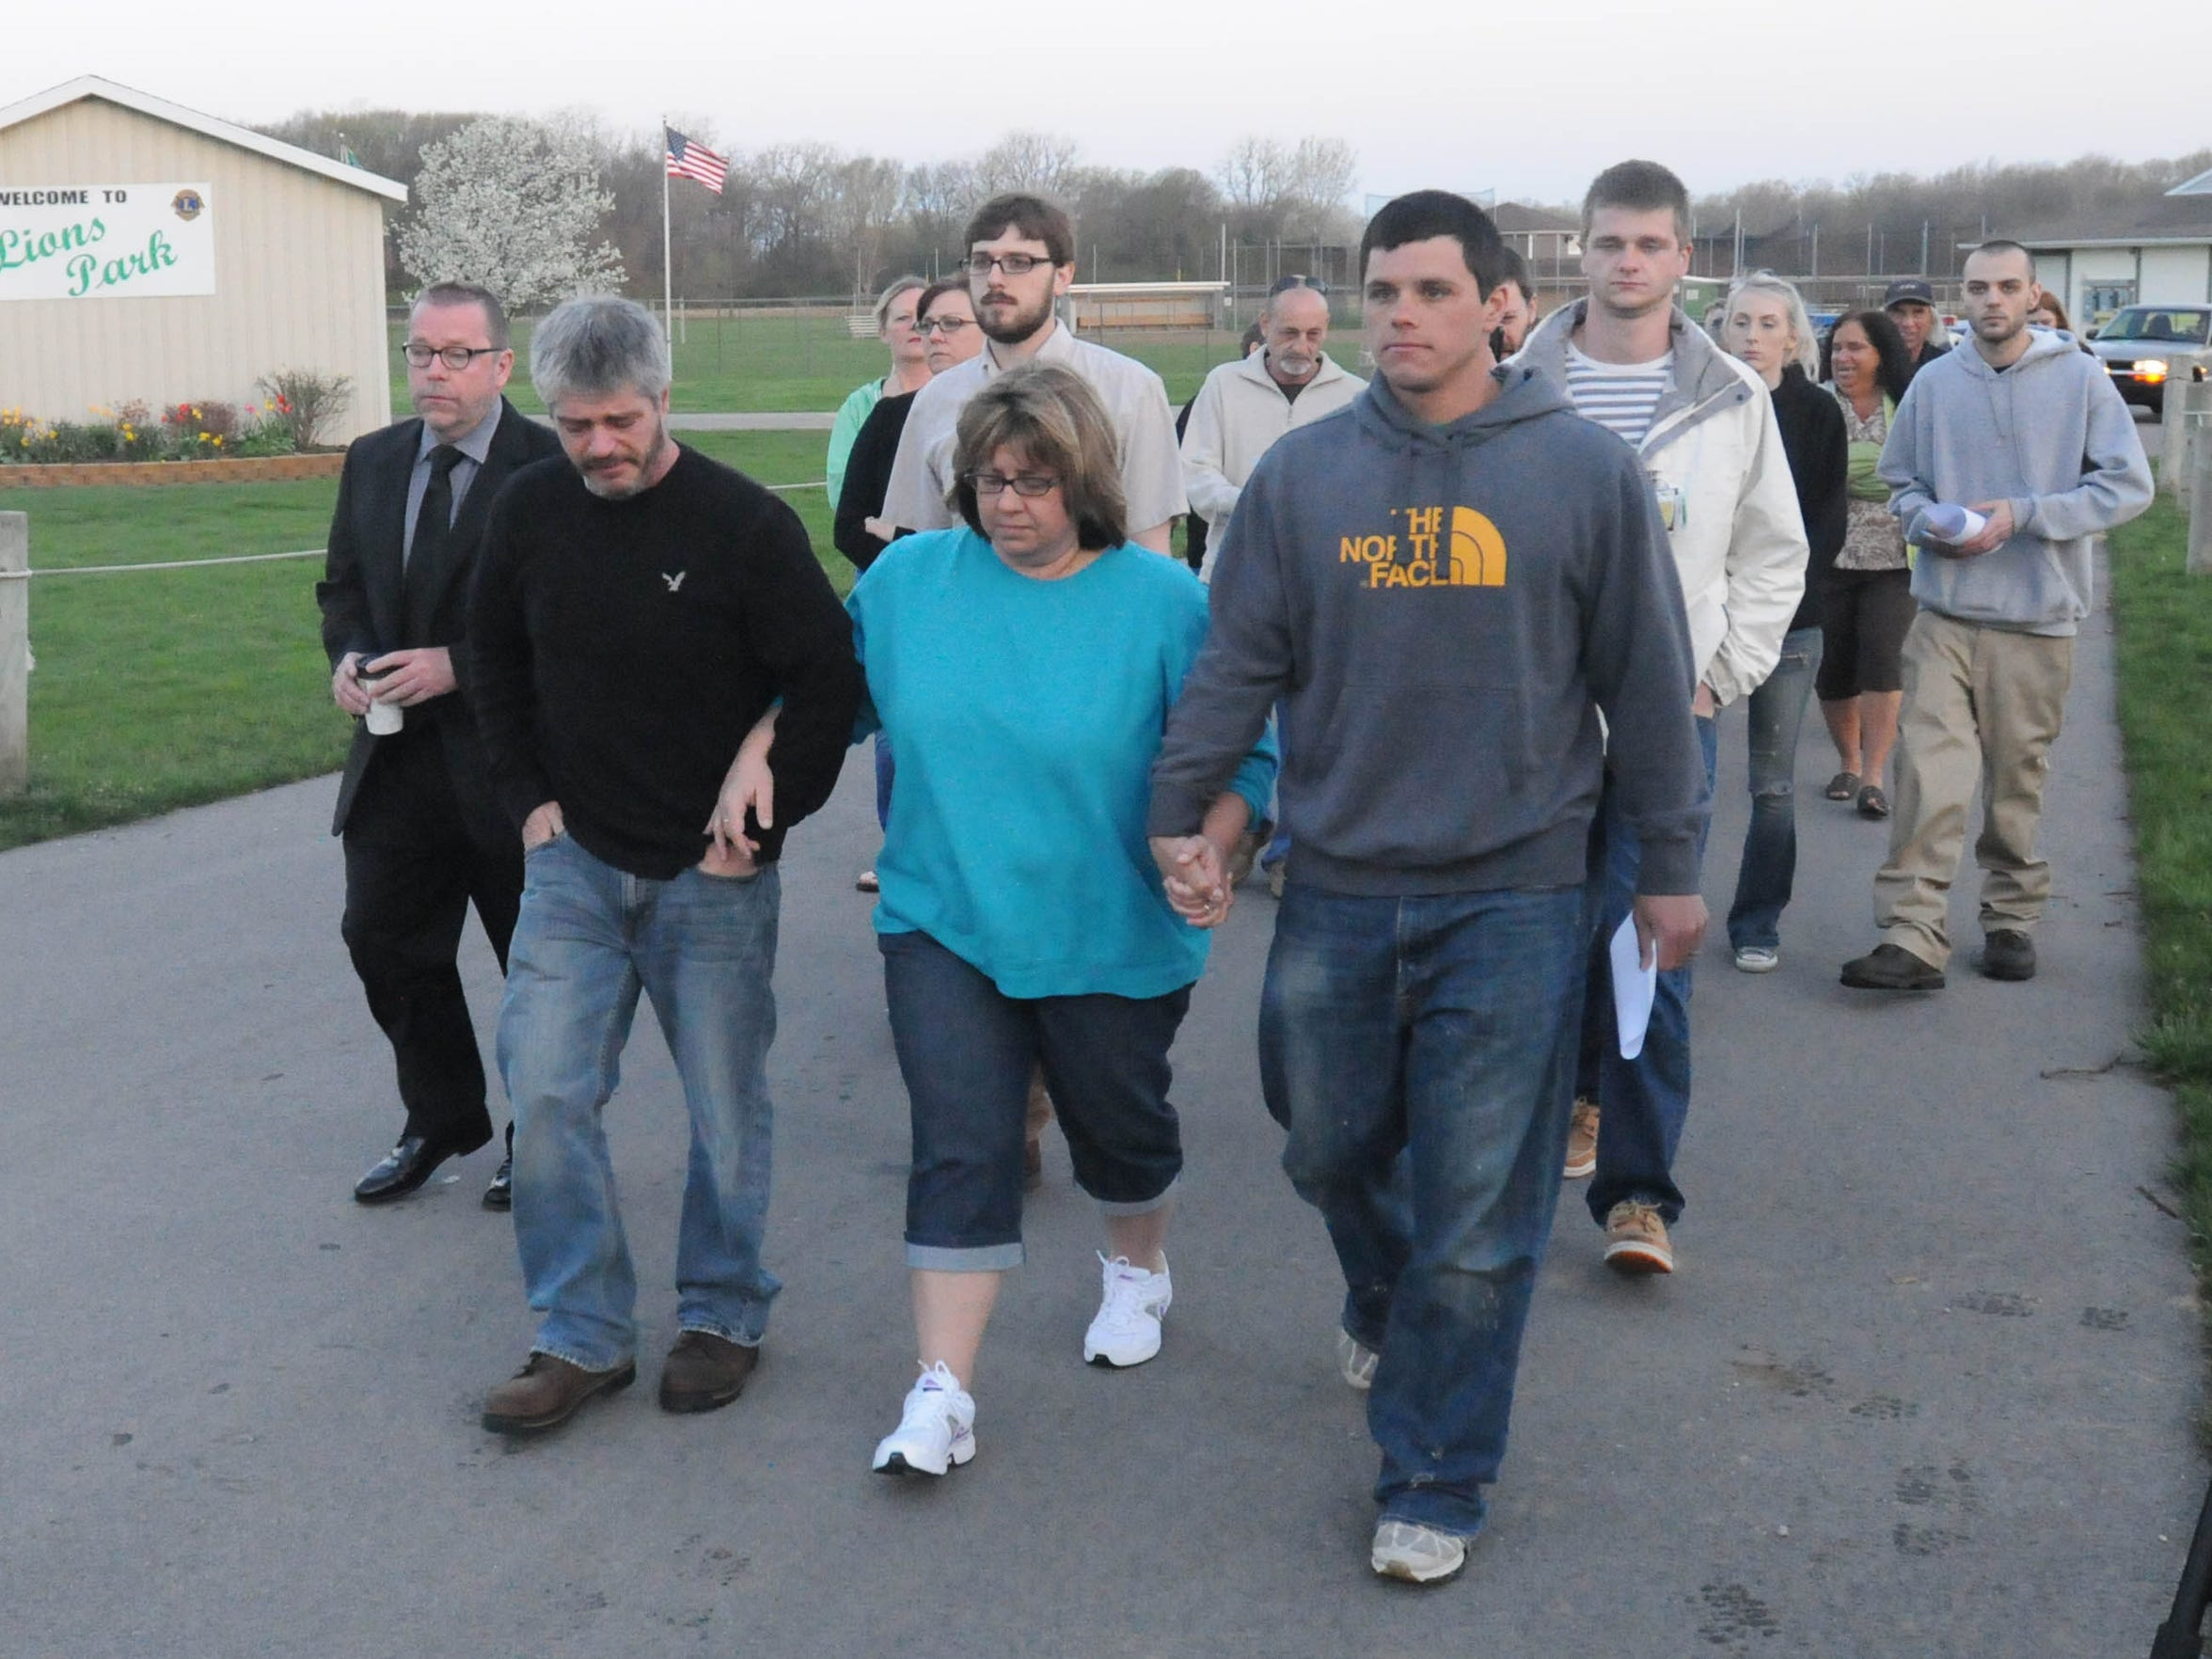 Family and friends of Jacob Limberios walk from Lions Park in Castalia to the site of Limberios' grave at the Castalia Cemetery in 2013.